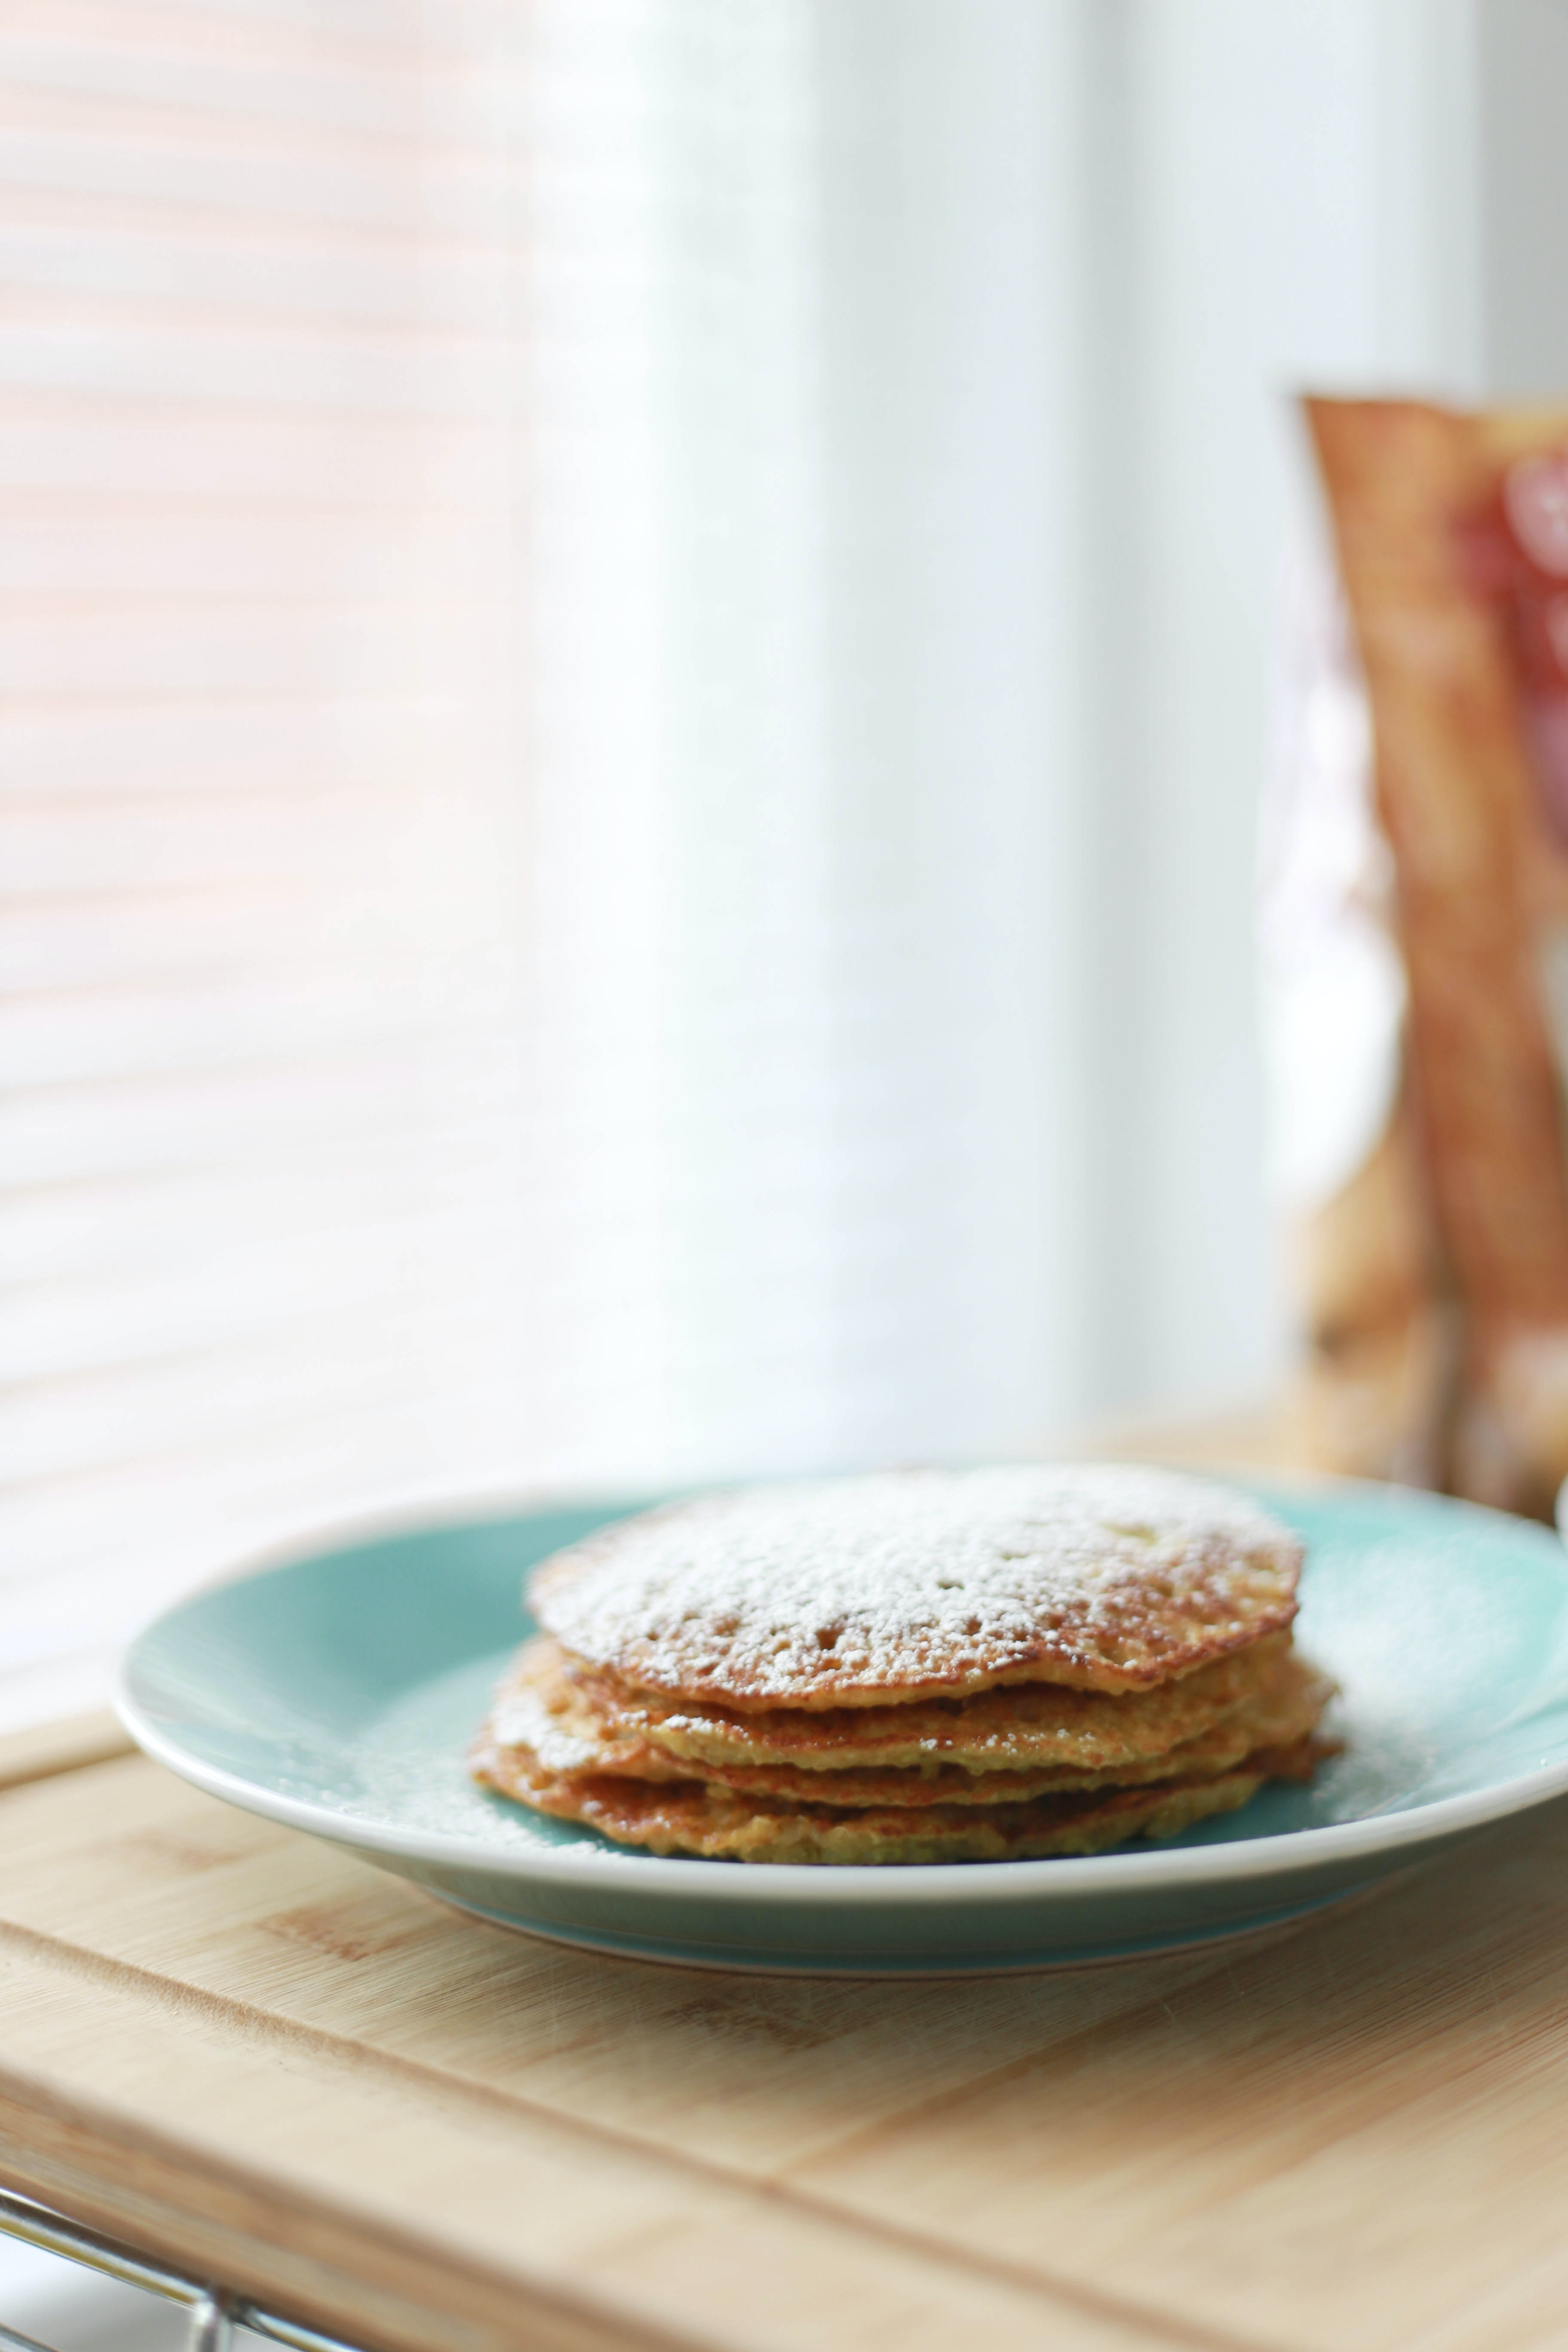 Pancakes covered with powdered sugar on a blue plate on a wooden table